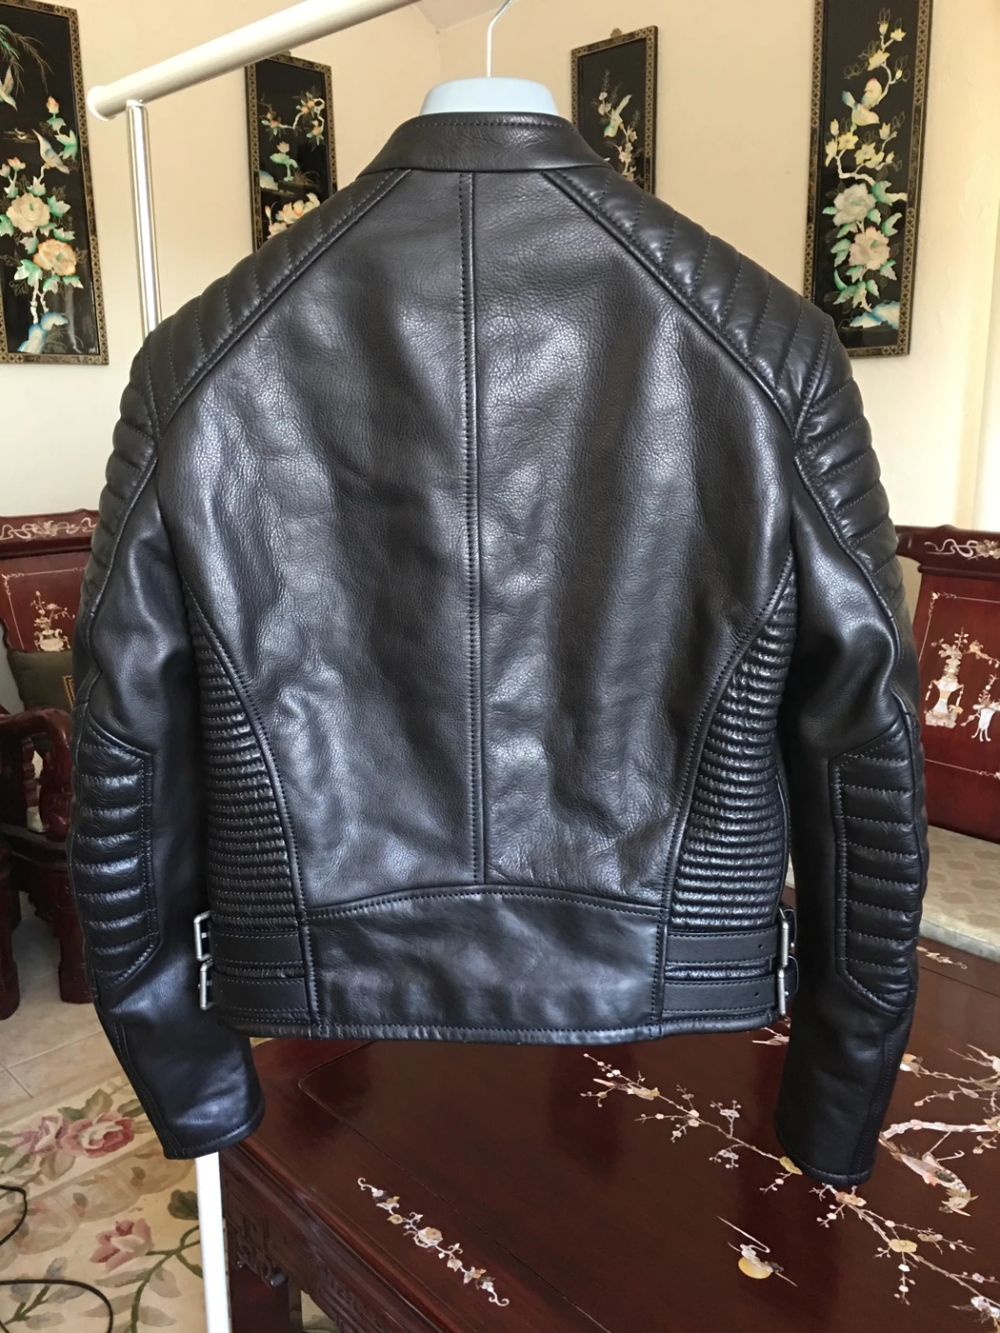 Burberry Prorsum One Of A Kind Runway Channel Quilted Calfskin Leather Motorcycle Biker Jacket Samp Mens Leather Jacket Biker Leather Jacket Outfit Men Jackets [ 1333 x 1000 Pixel ]